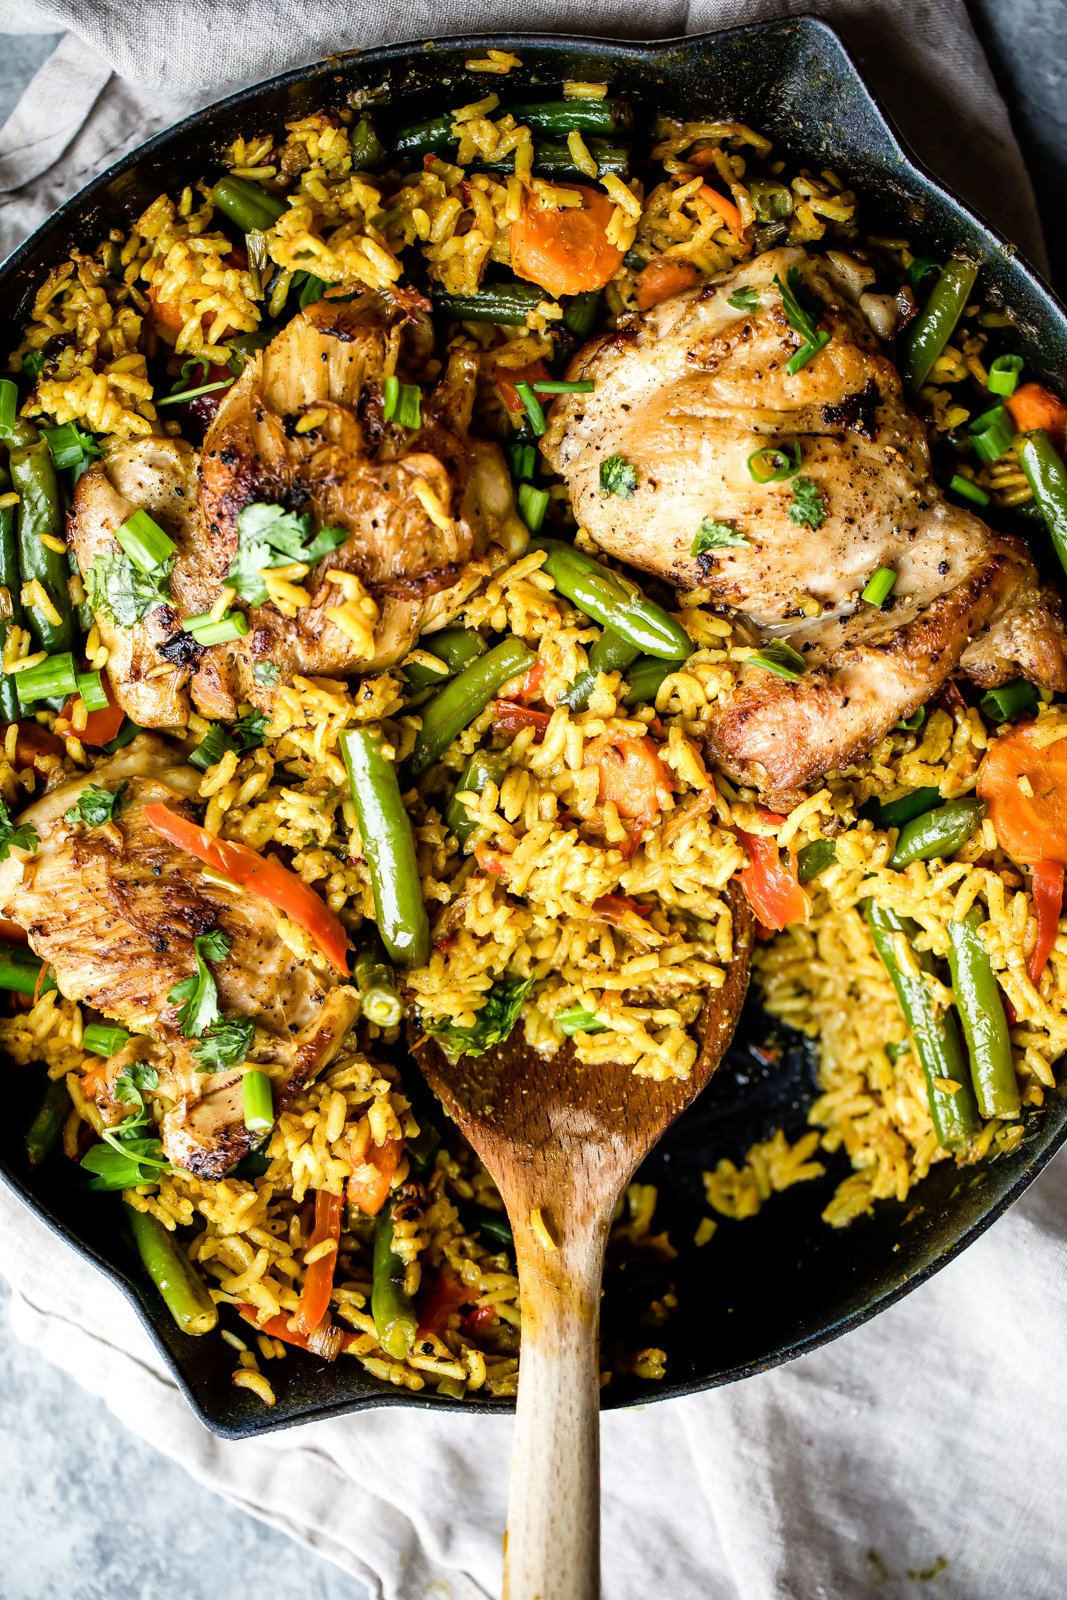 Weekend favorites: One Pan Thai Coconut Yellow Curry Chicken and Rice